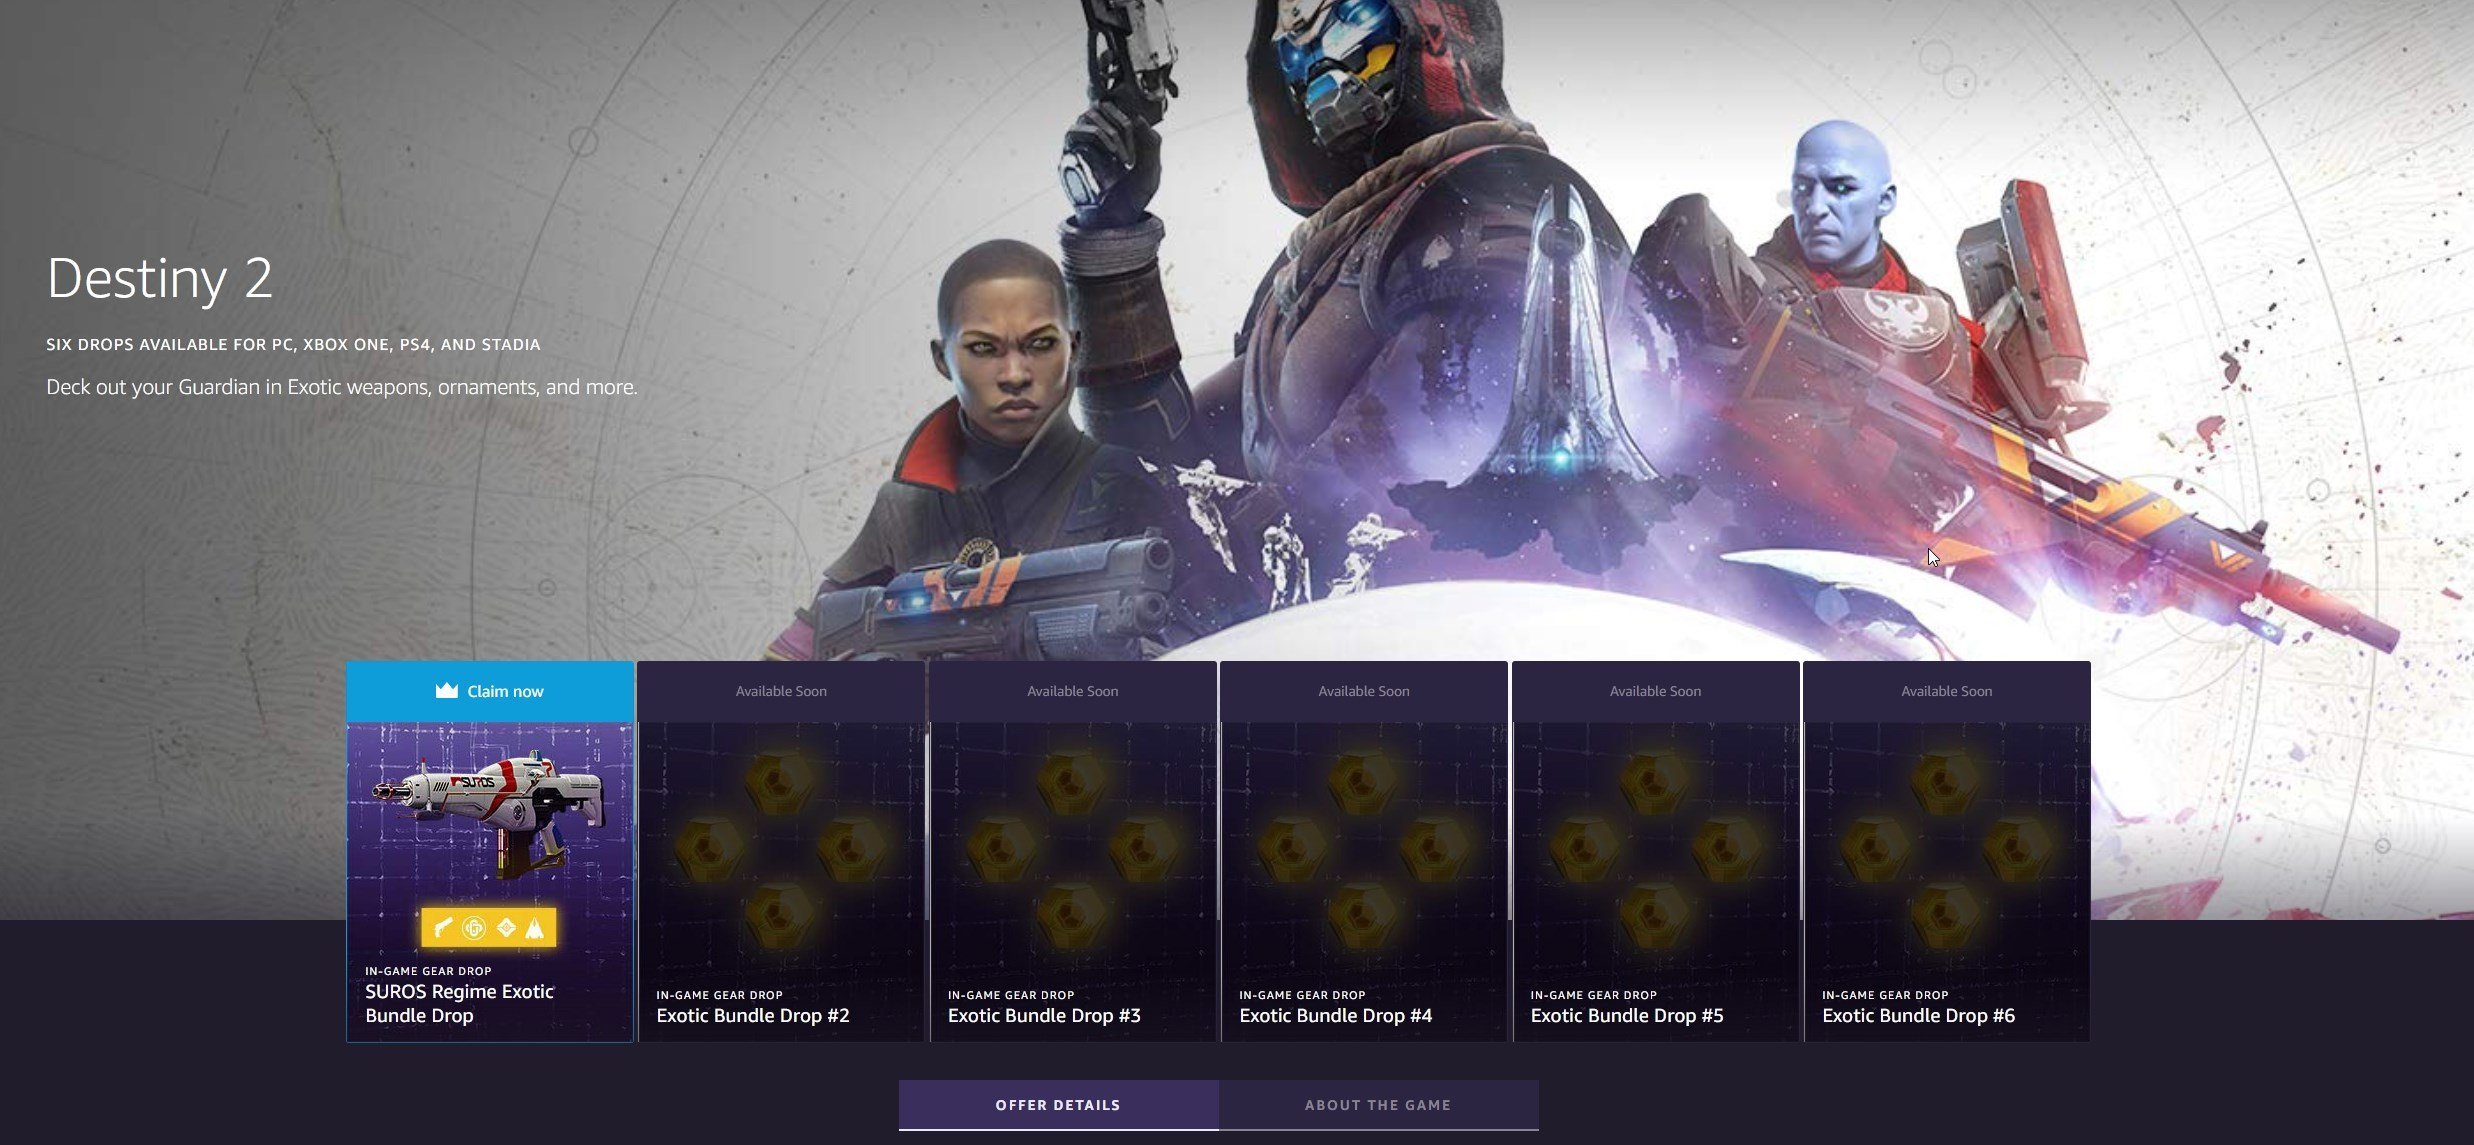 Destiny 2 Twitch Prime Exotic loot drop page